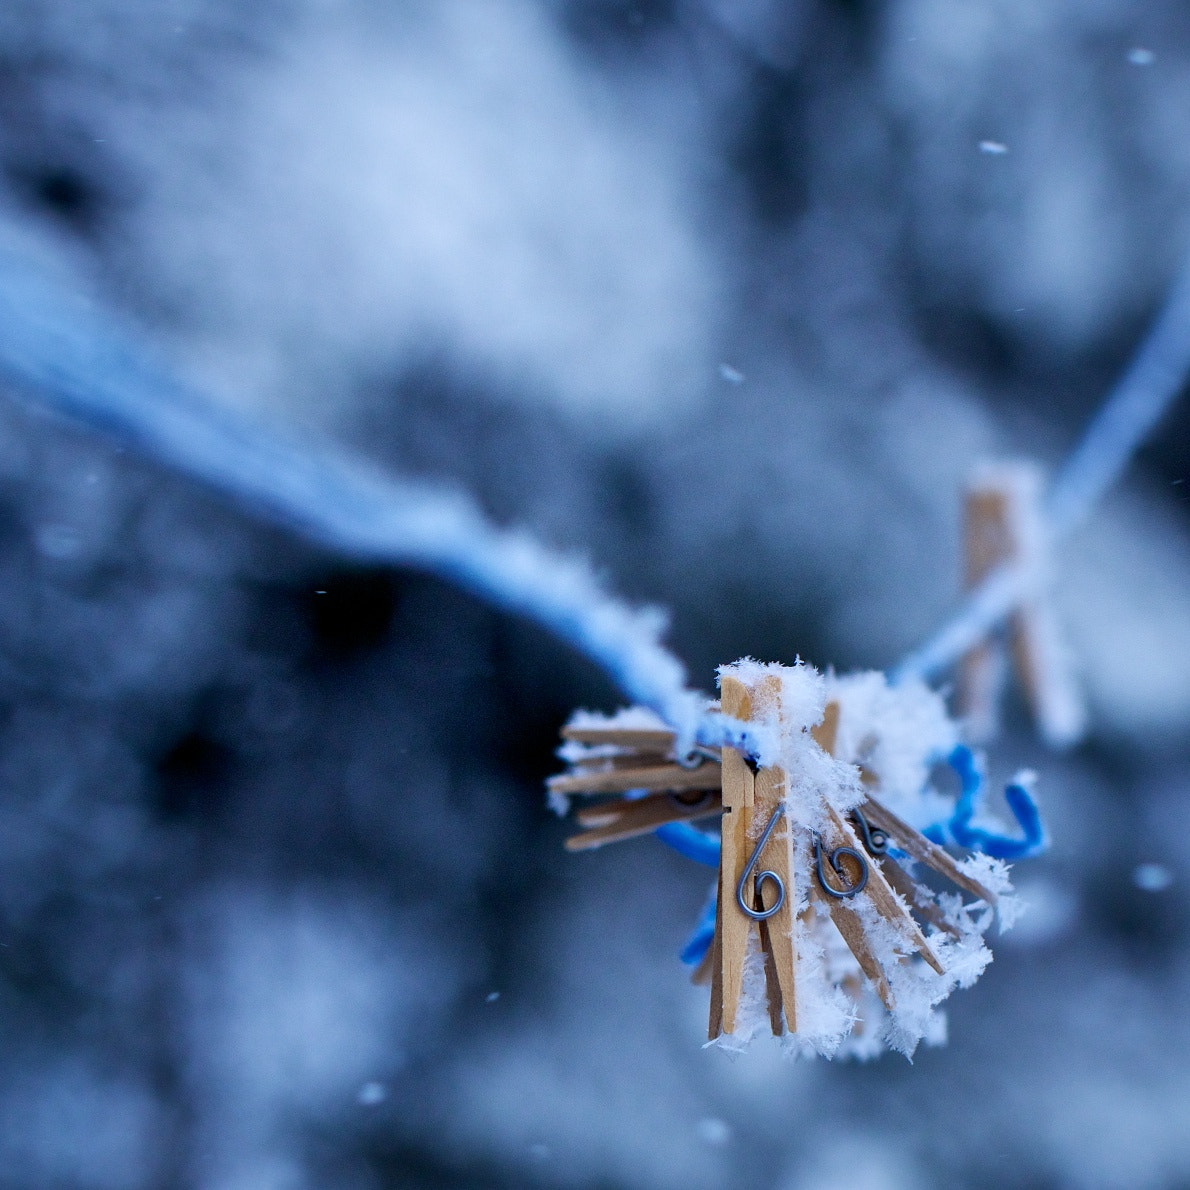 Photograph Winter day by Isabelle Langlois on 500px